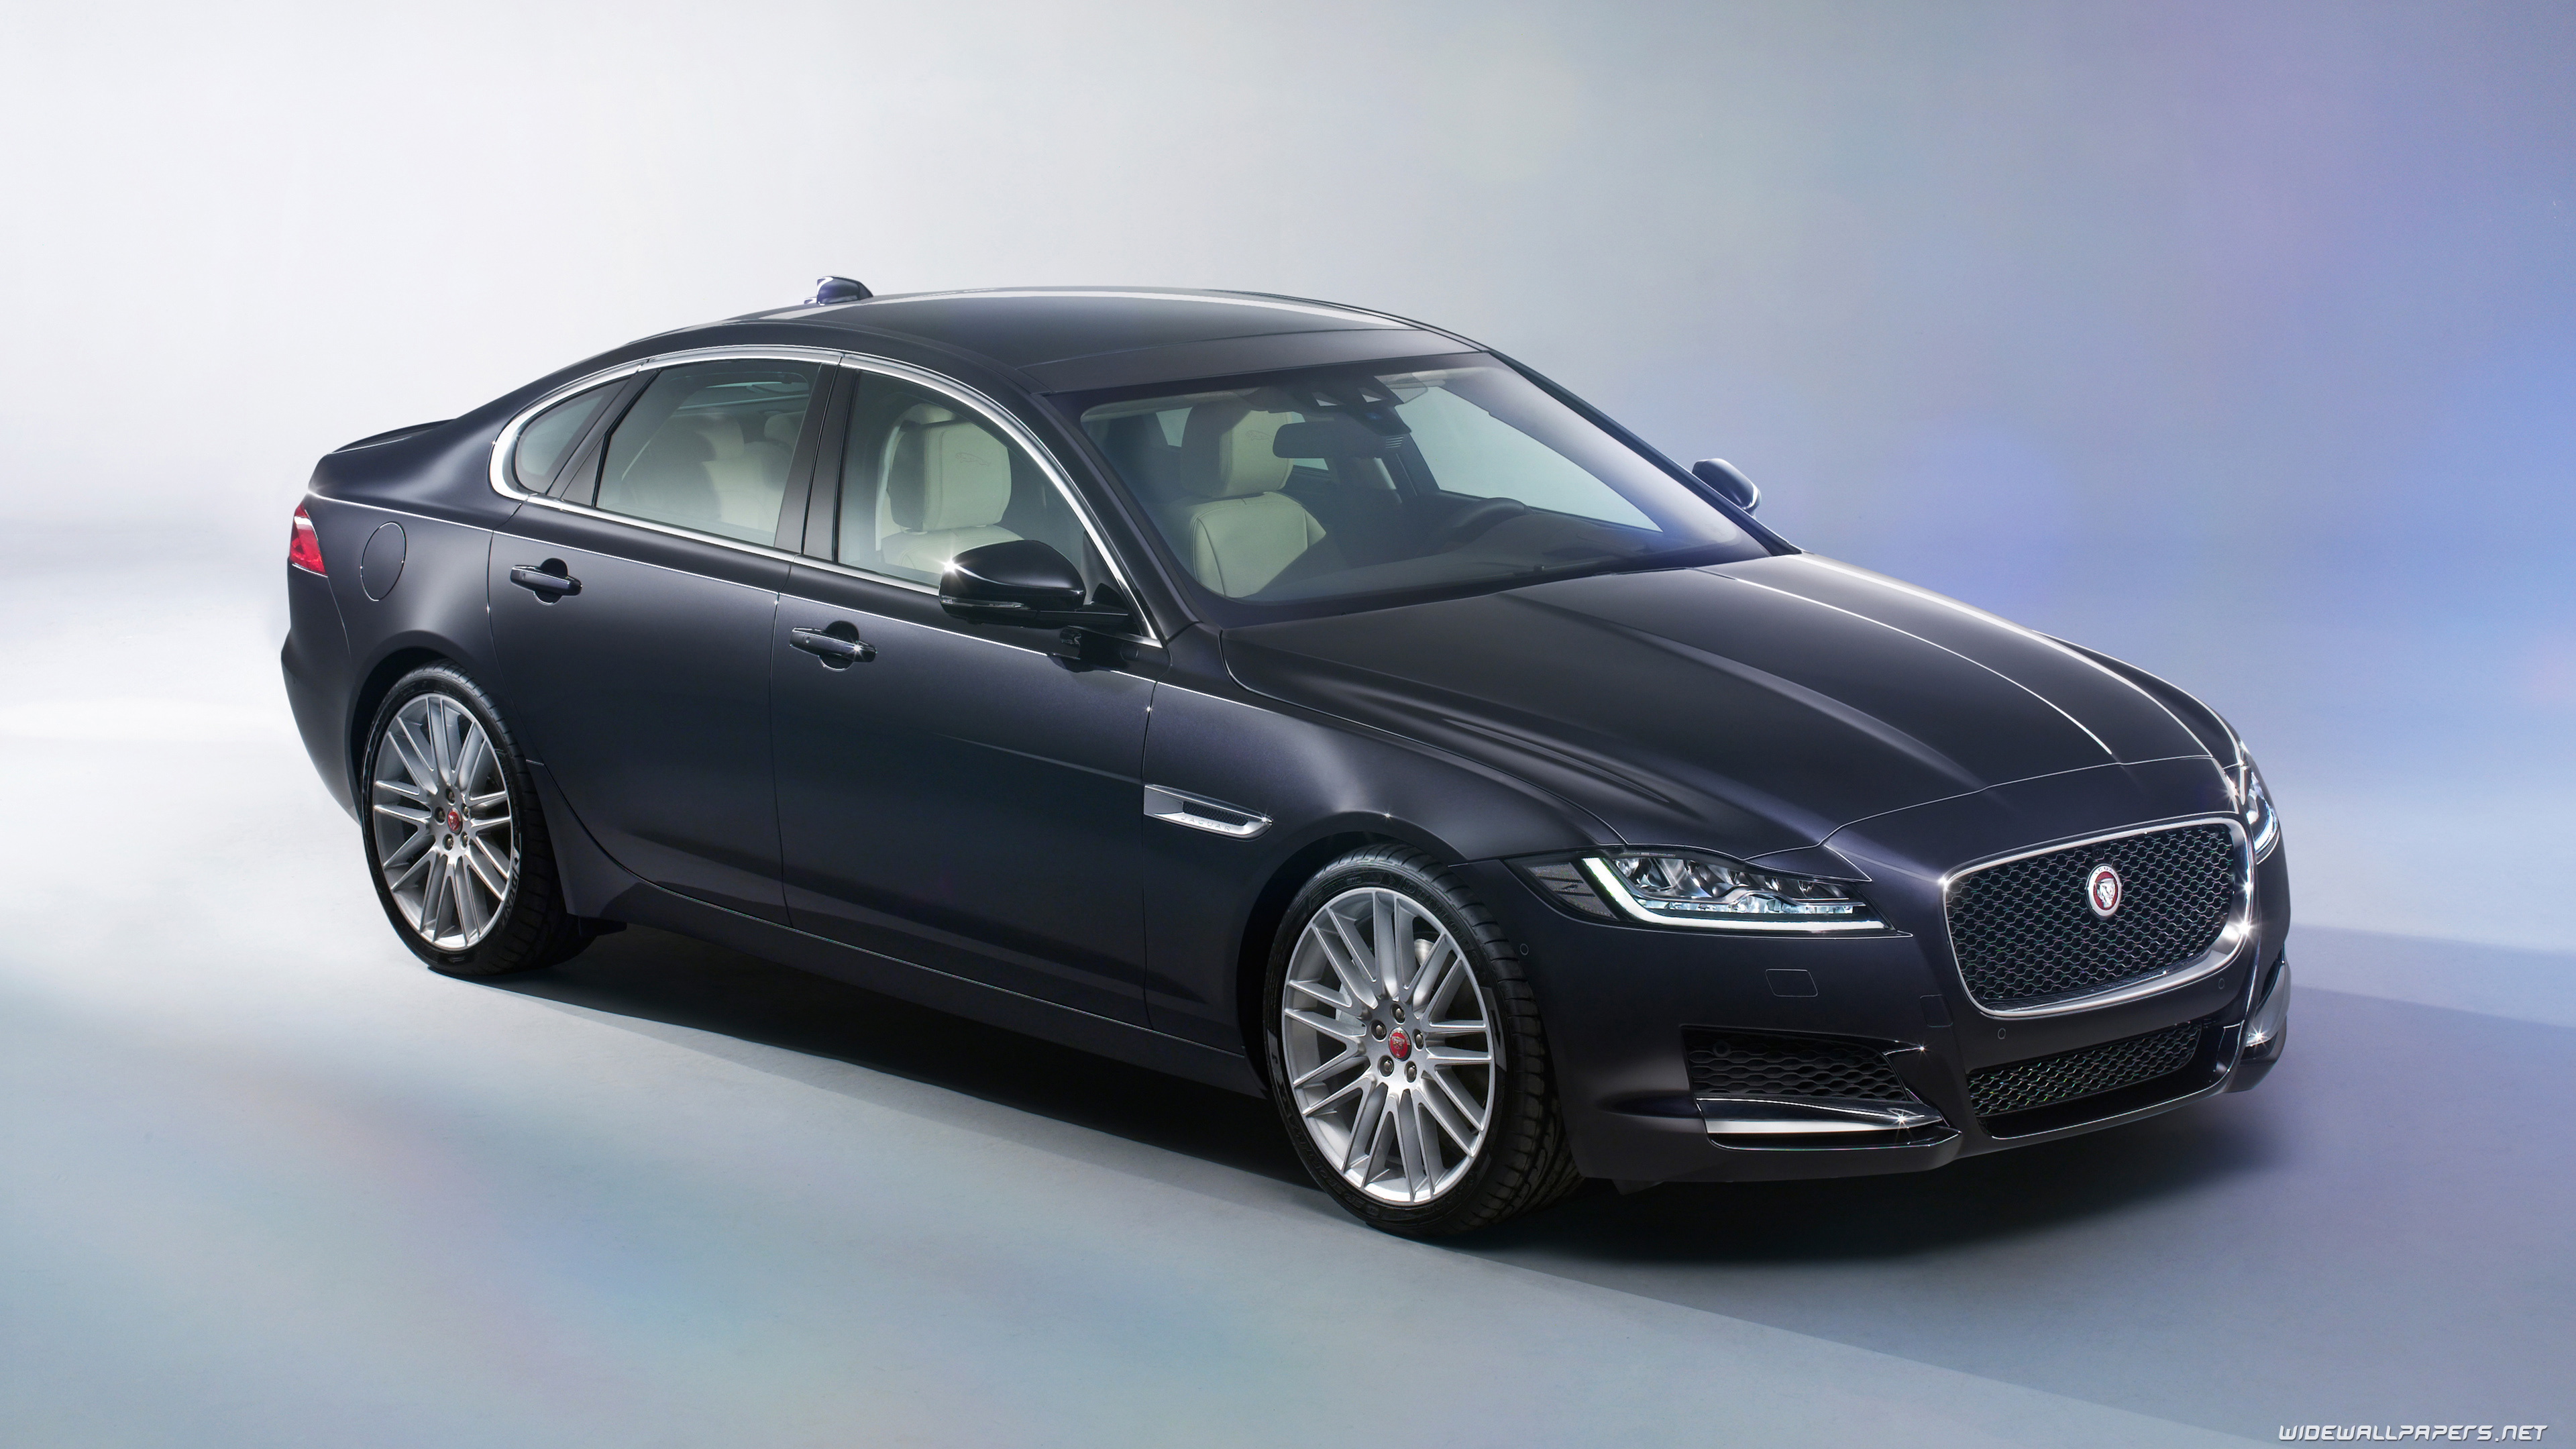 WallpapersWidecom Jaguar HD Desktop Wallpapers for 4K